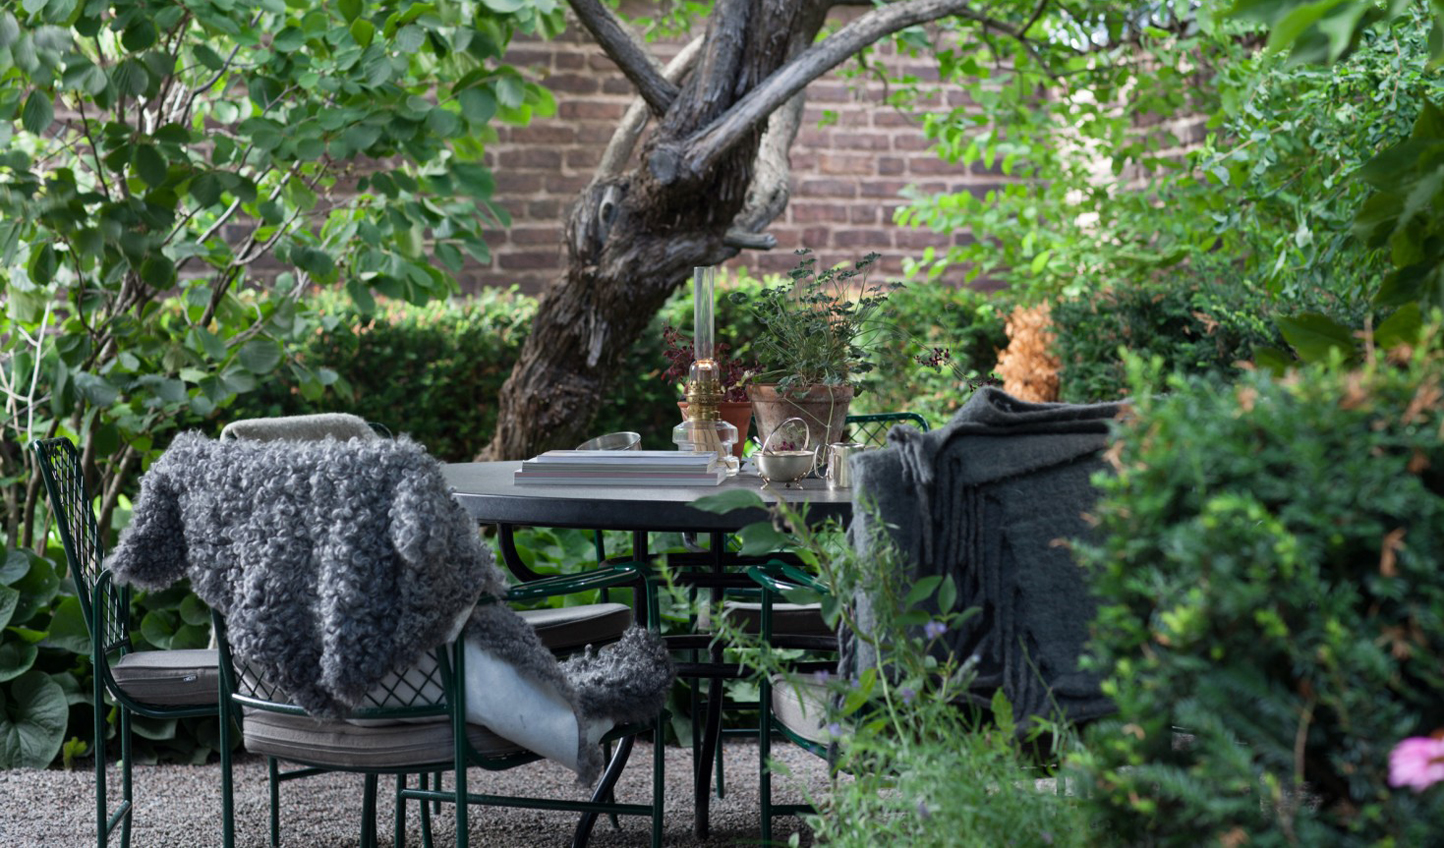 Enjoy summer afternoons out in the garden